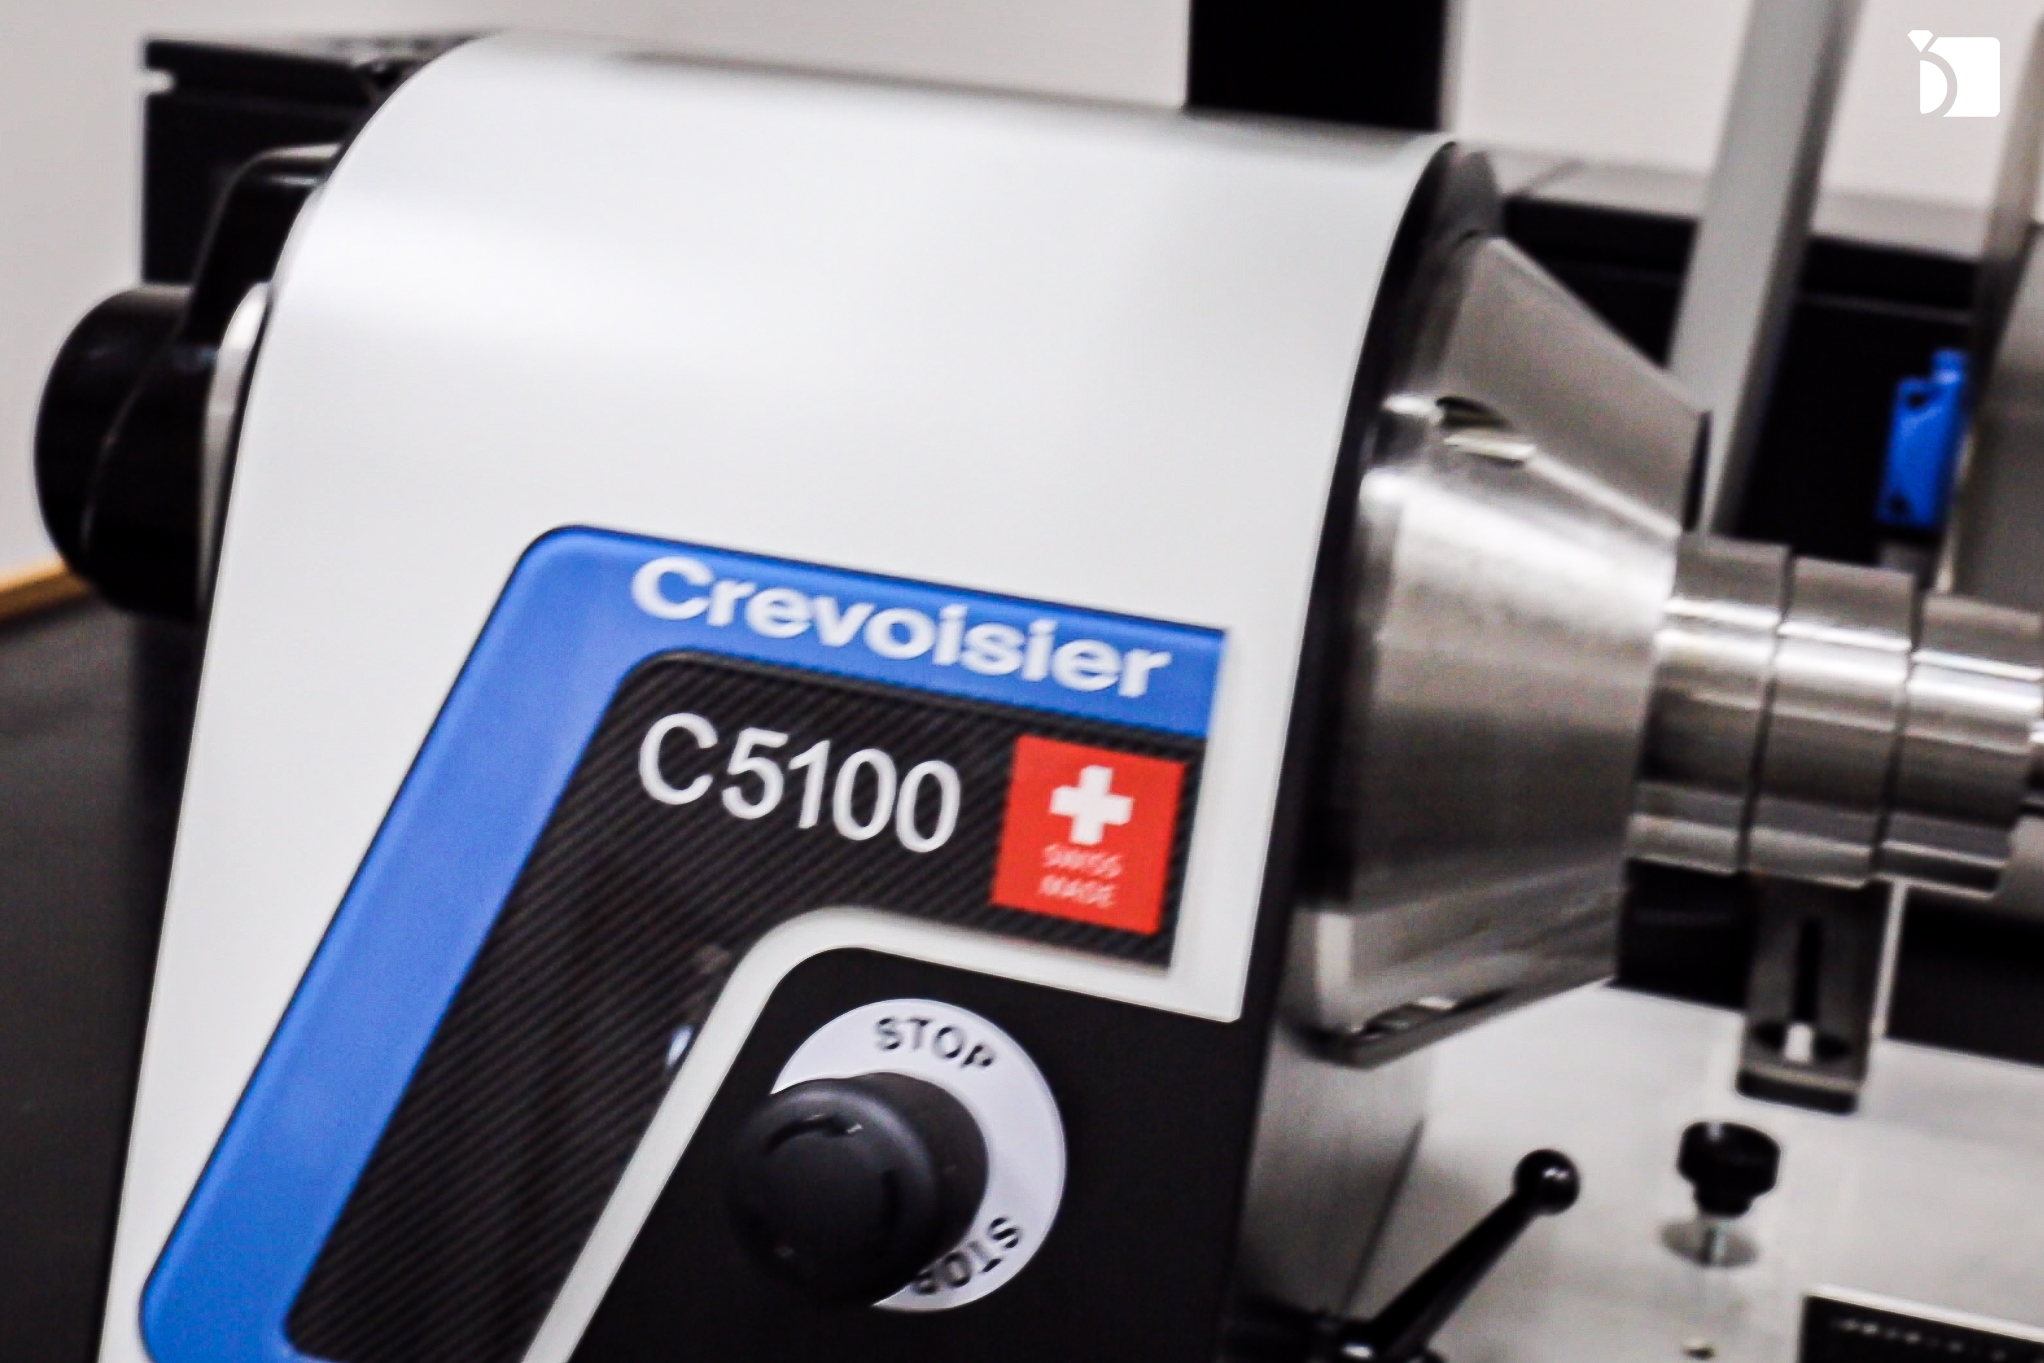 Image Showcasing the Creovoisier Machine in the Watch Repair Service Center